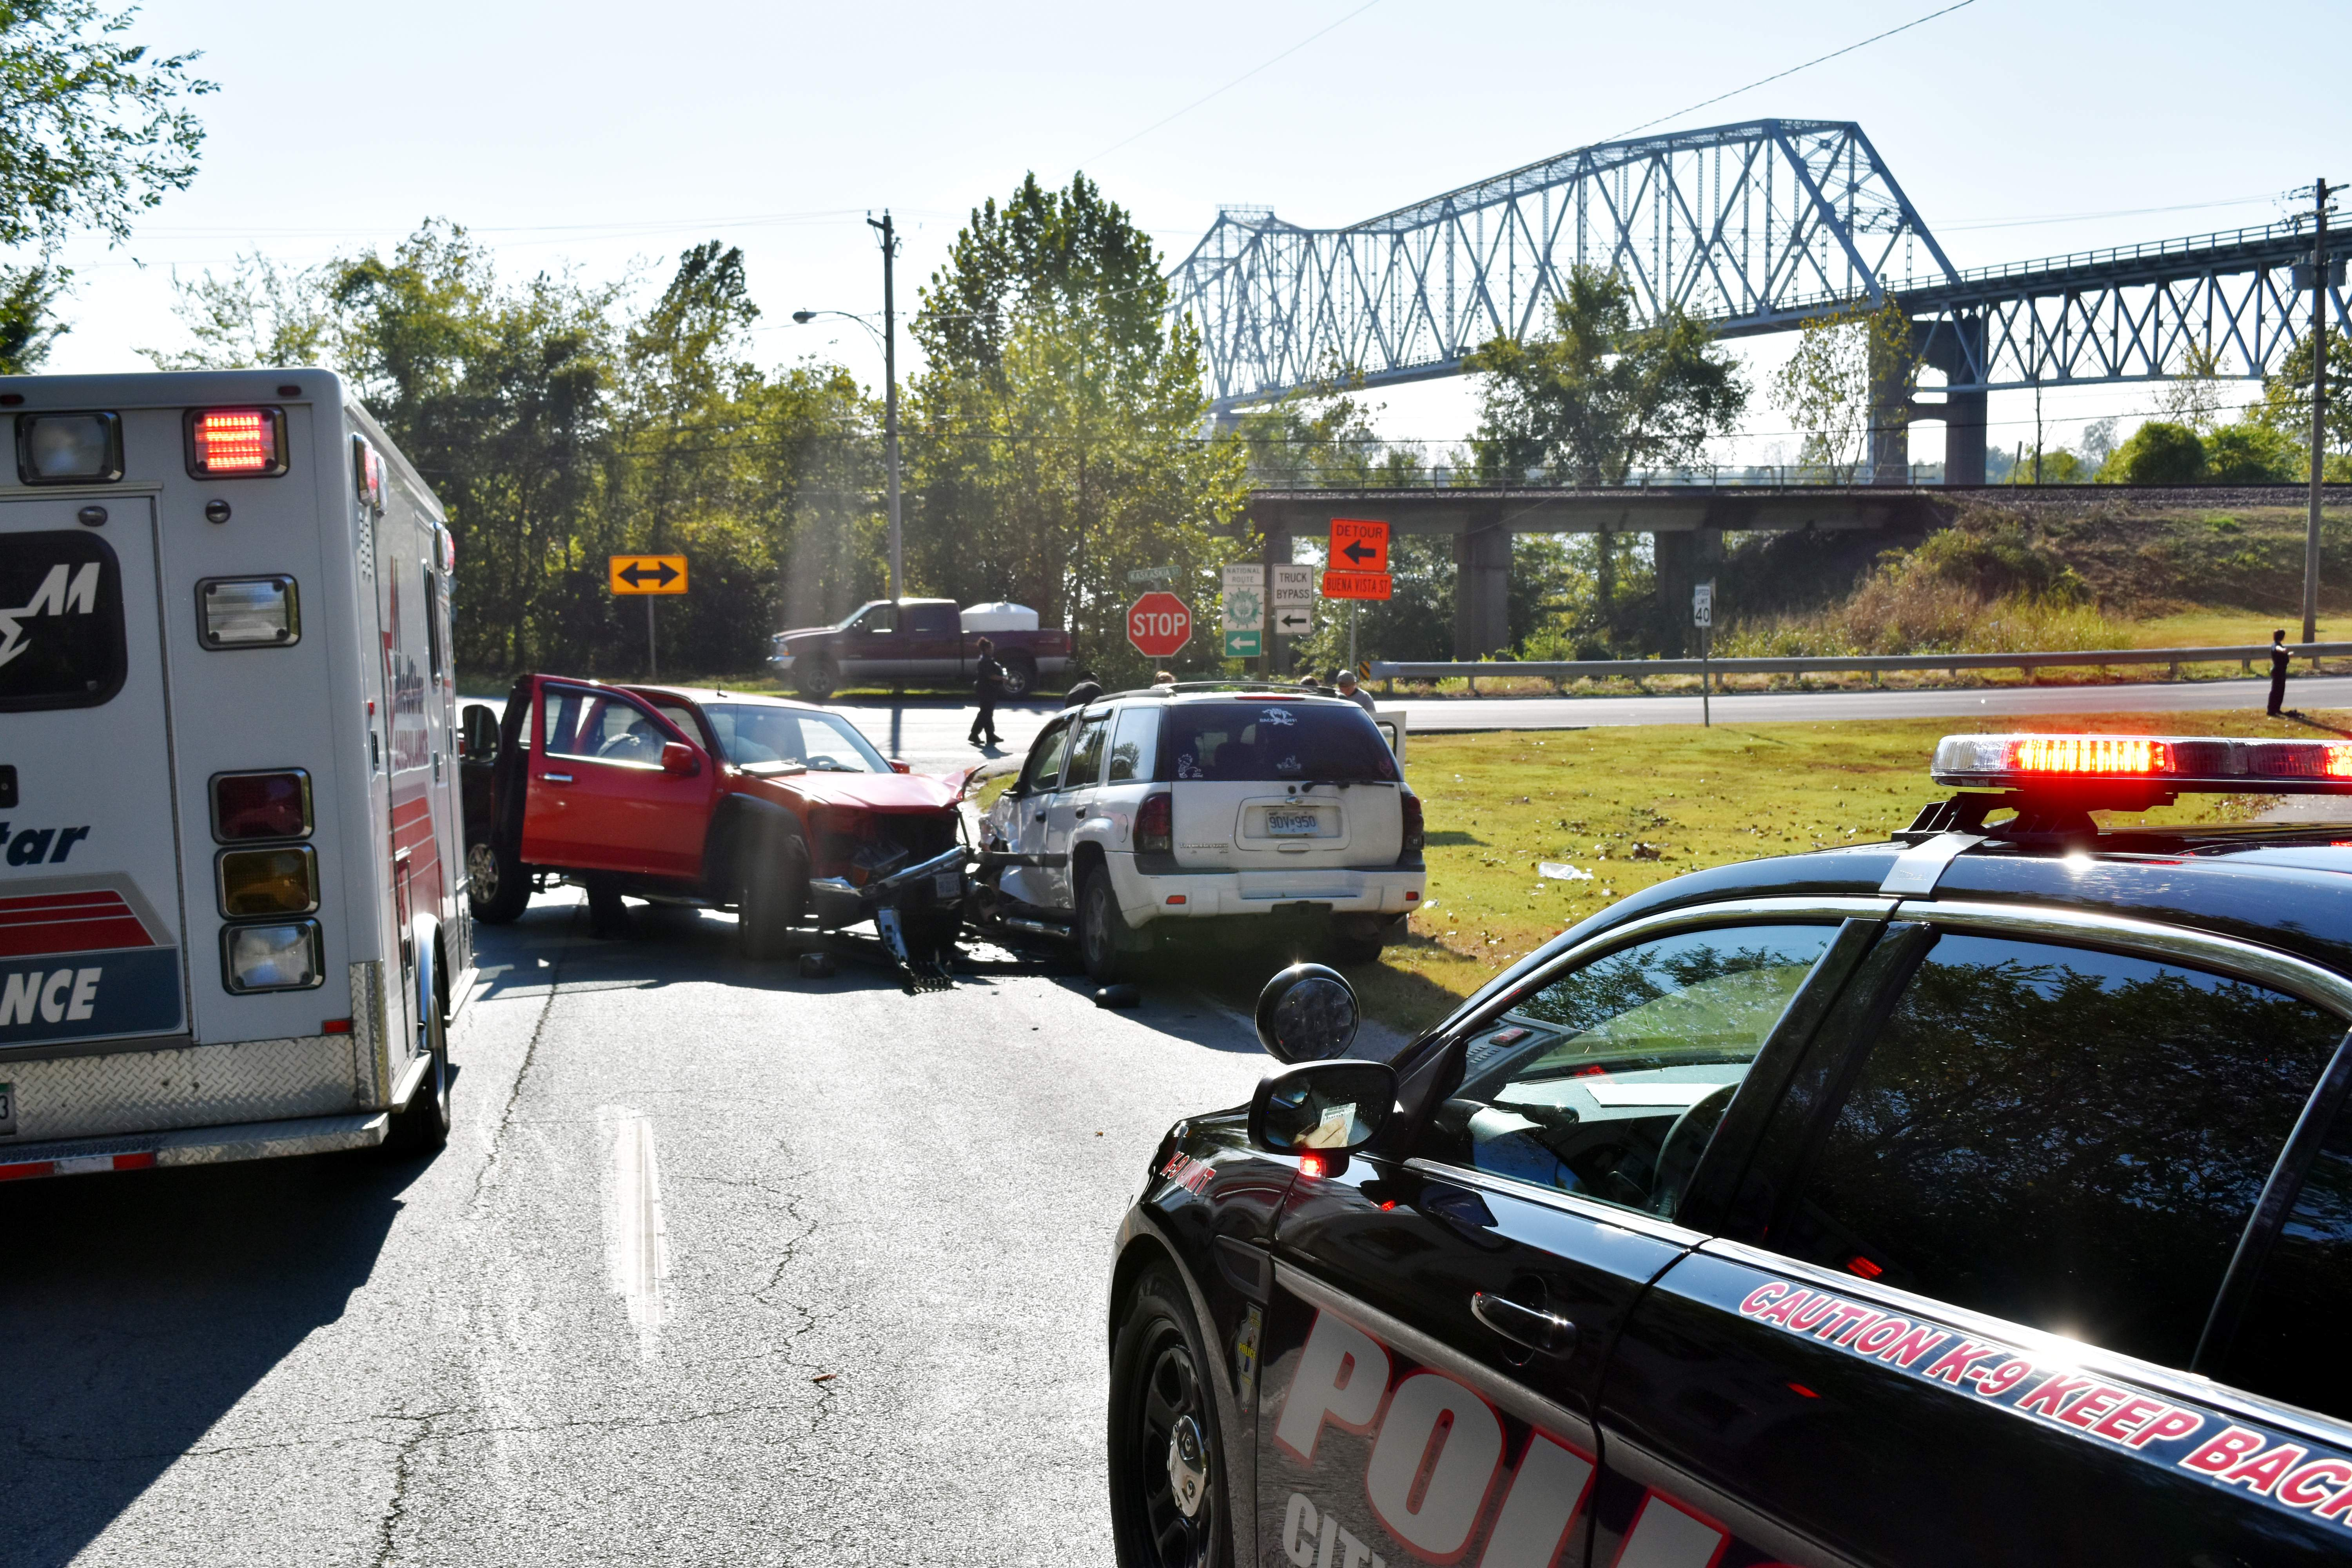 Chester police and emergency services attend to a two-vehicle accident at the intersection of Bridge Bypass Road and Kaskaskia Street on Oct. 13.